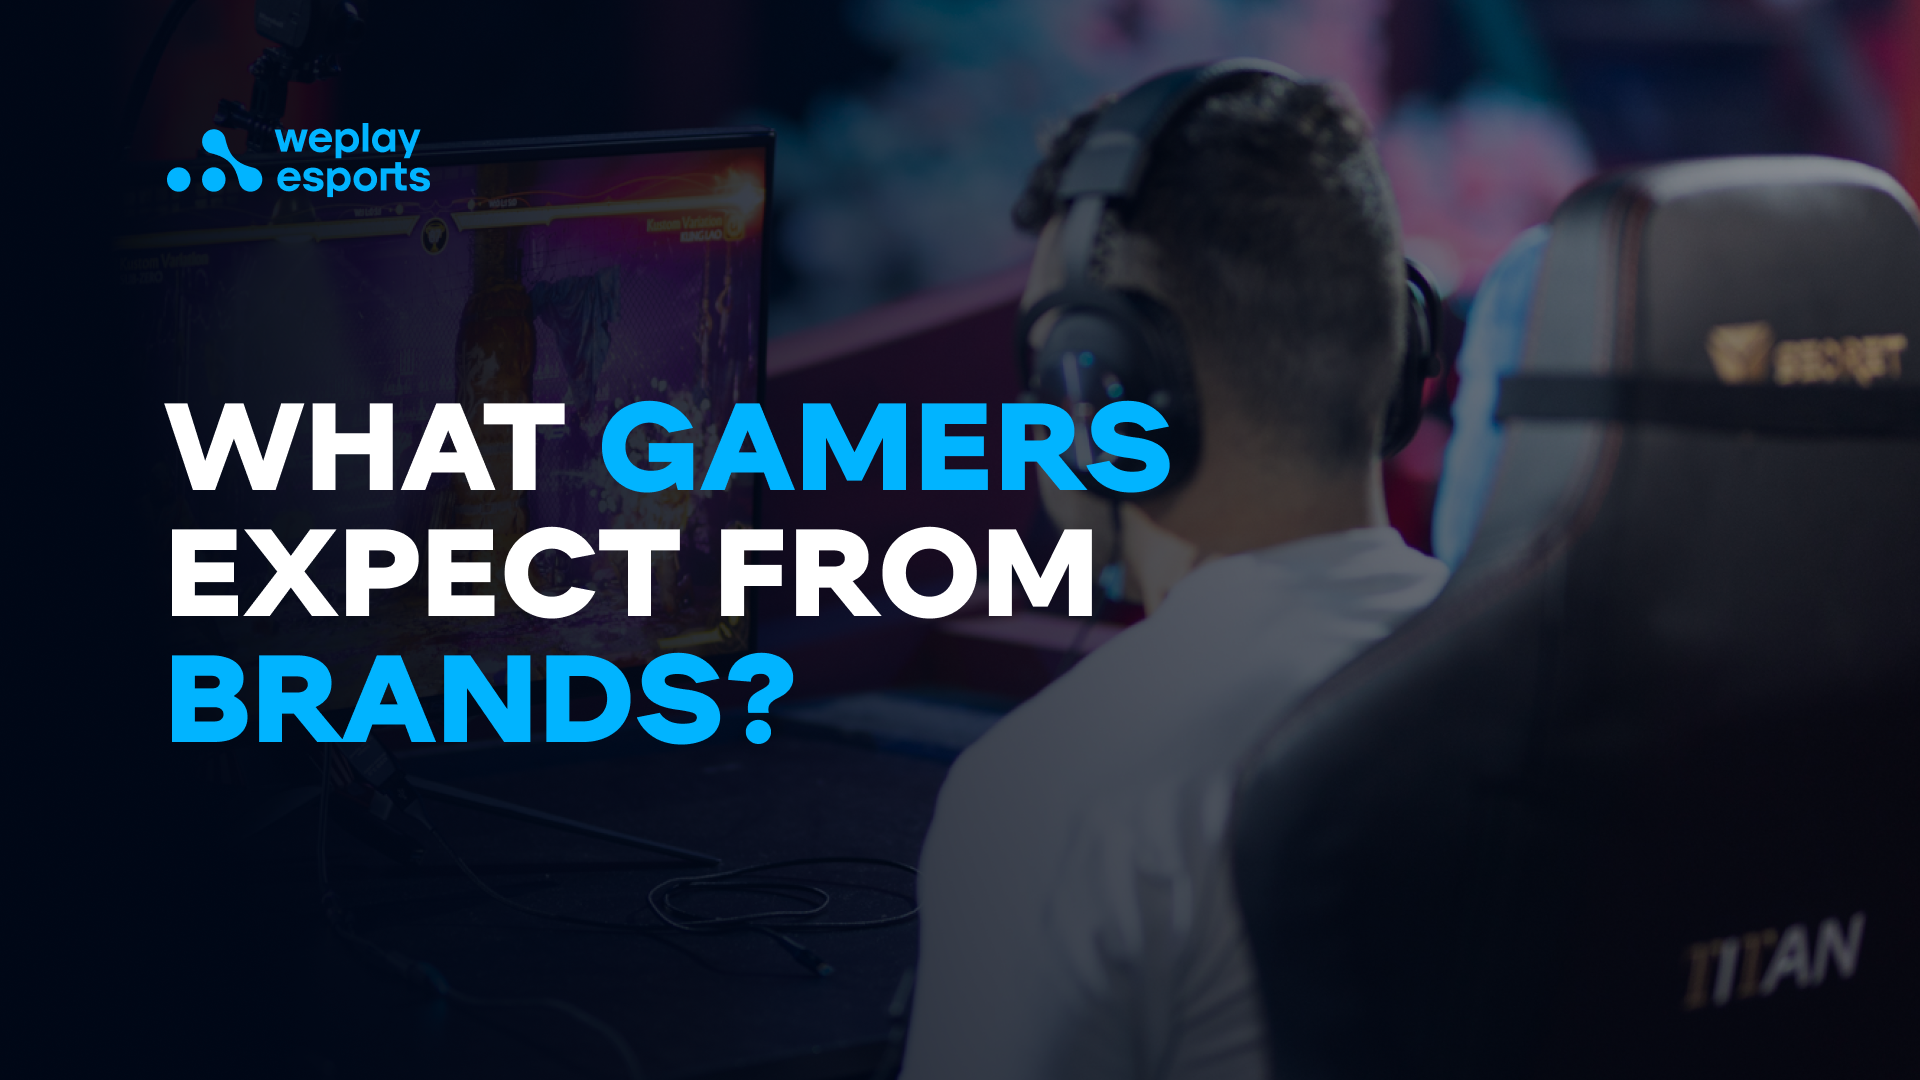 What gamers expect from brands?